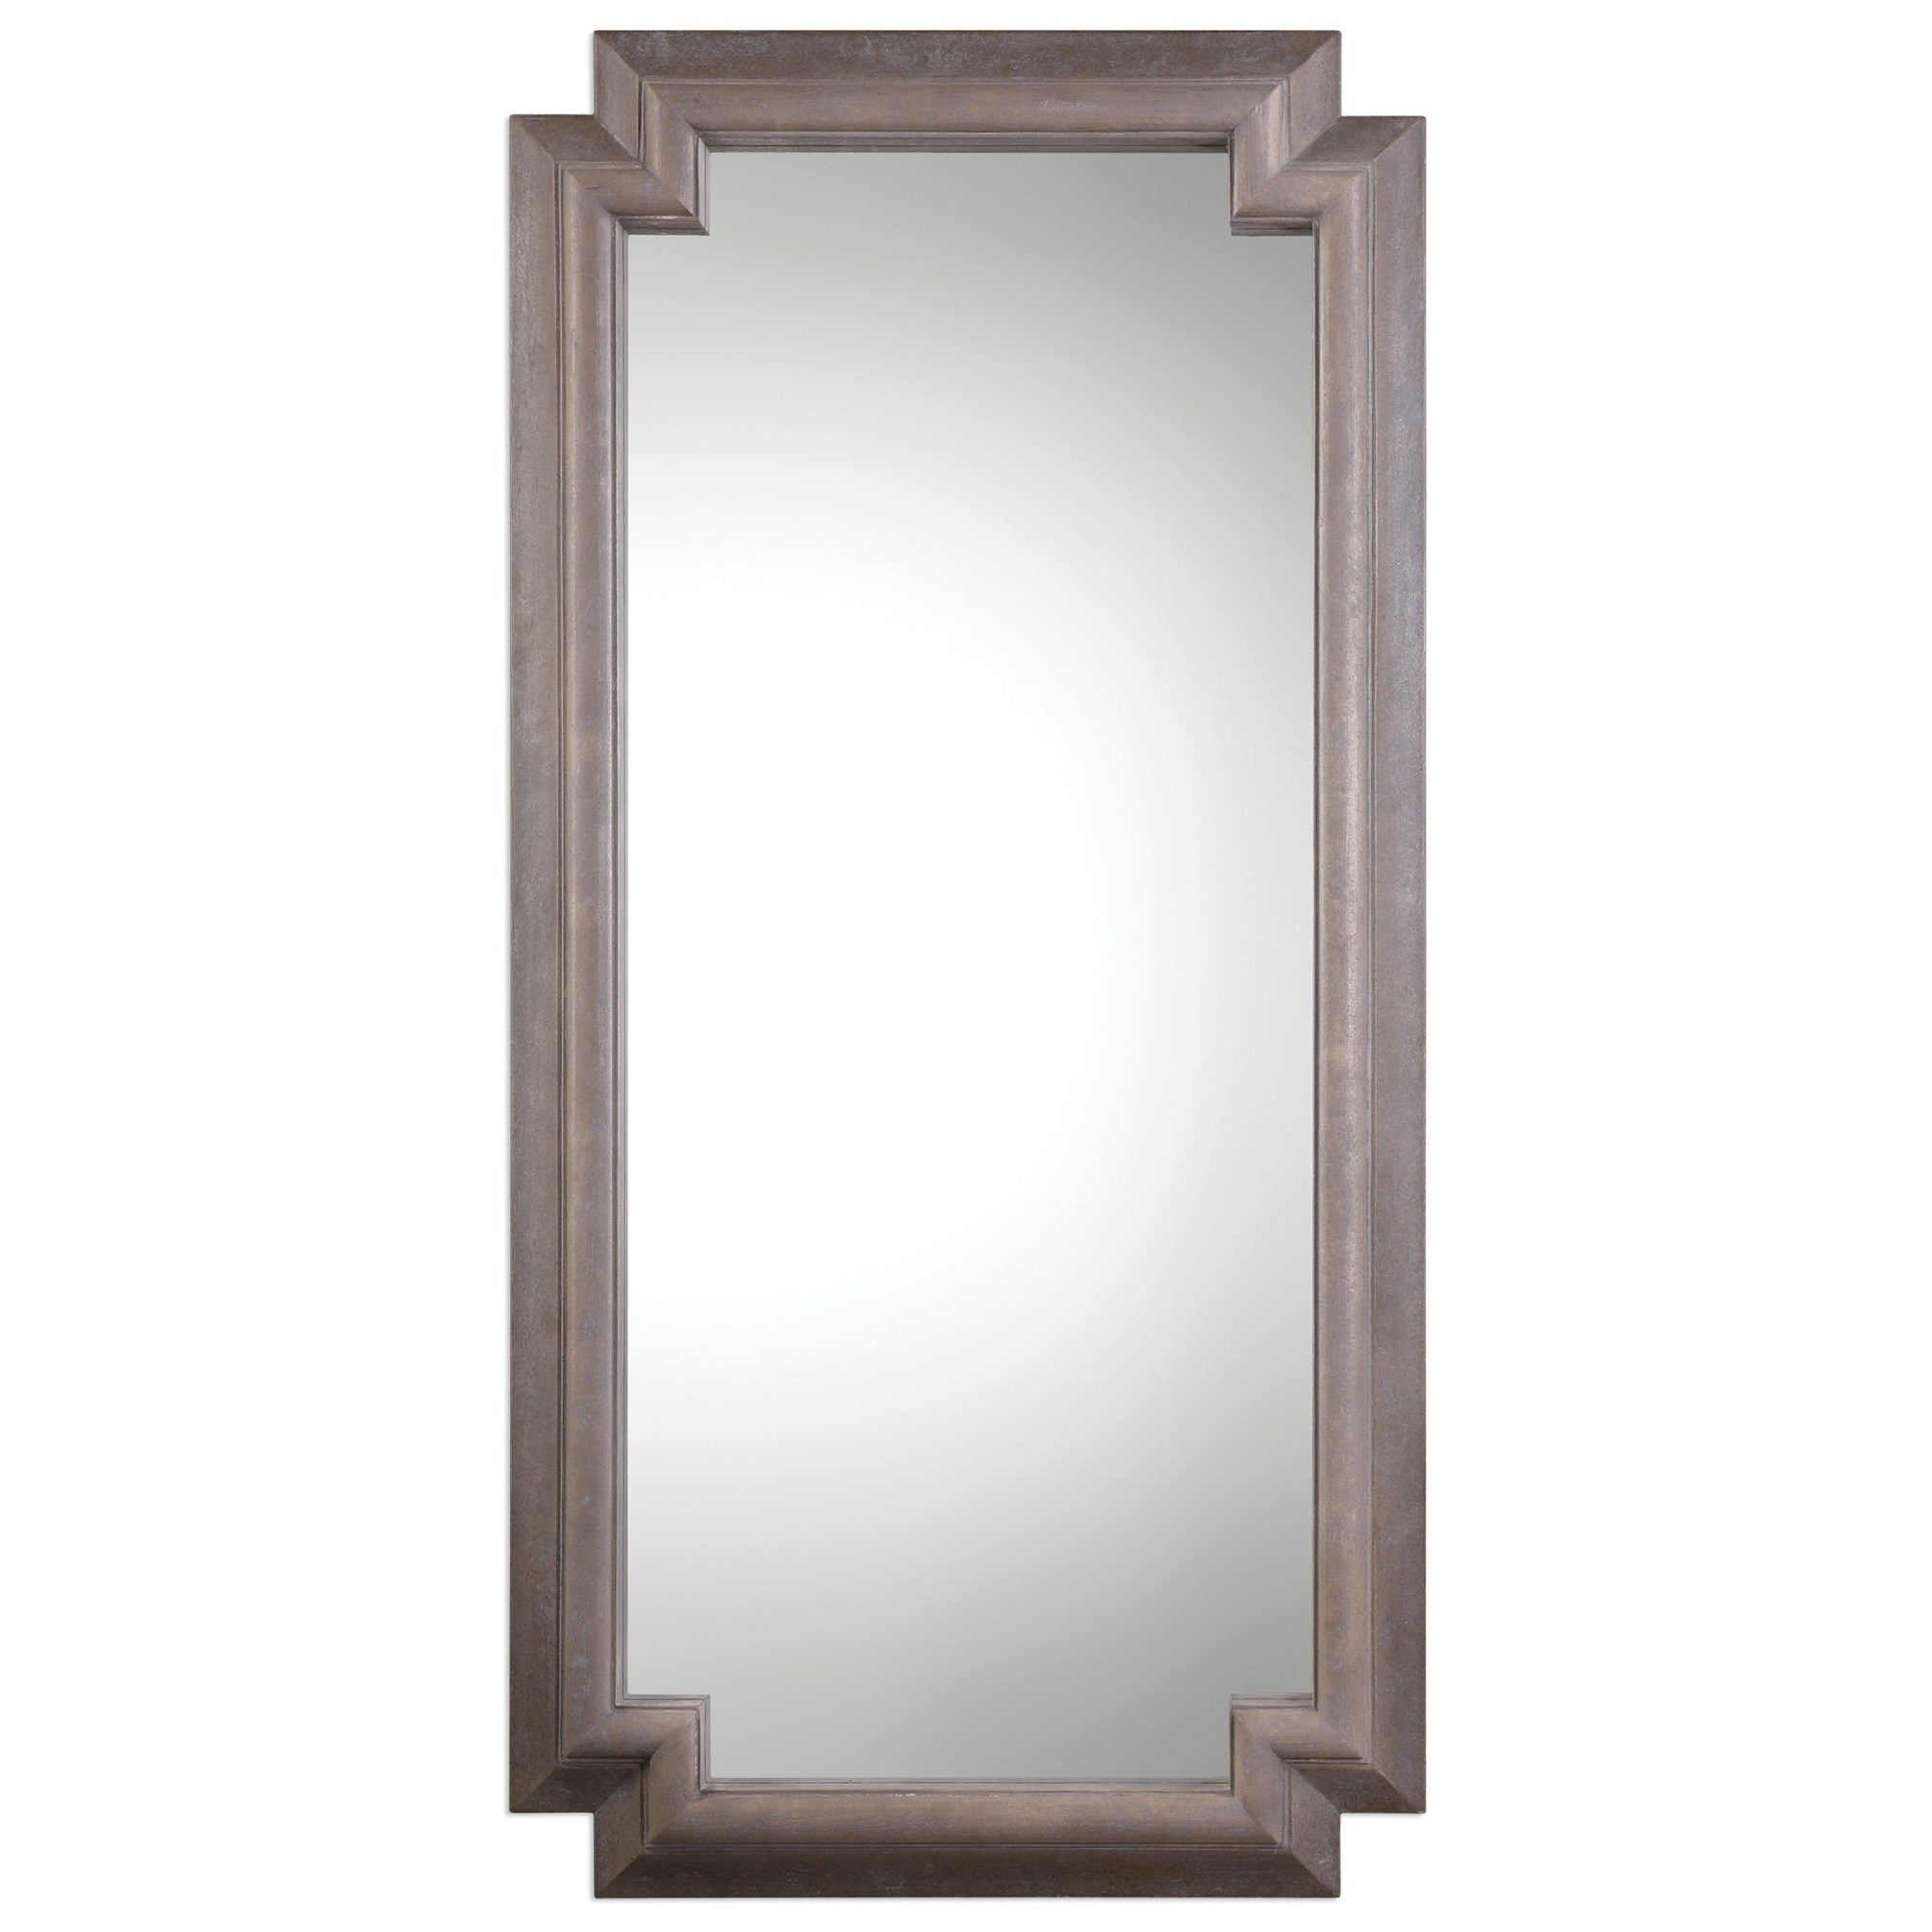 Uttermost Mirrors Dales - Item Number: 09119